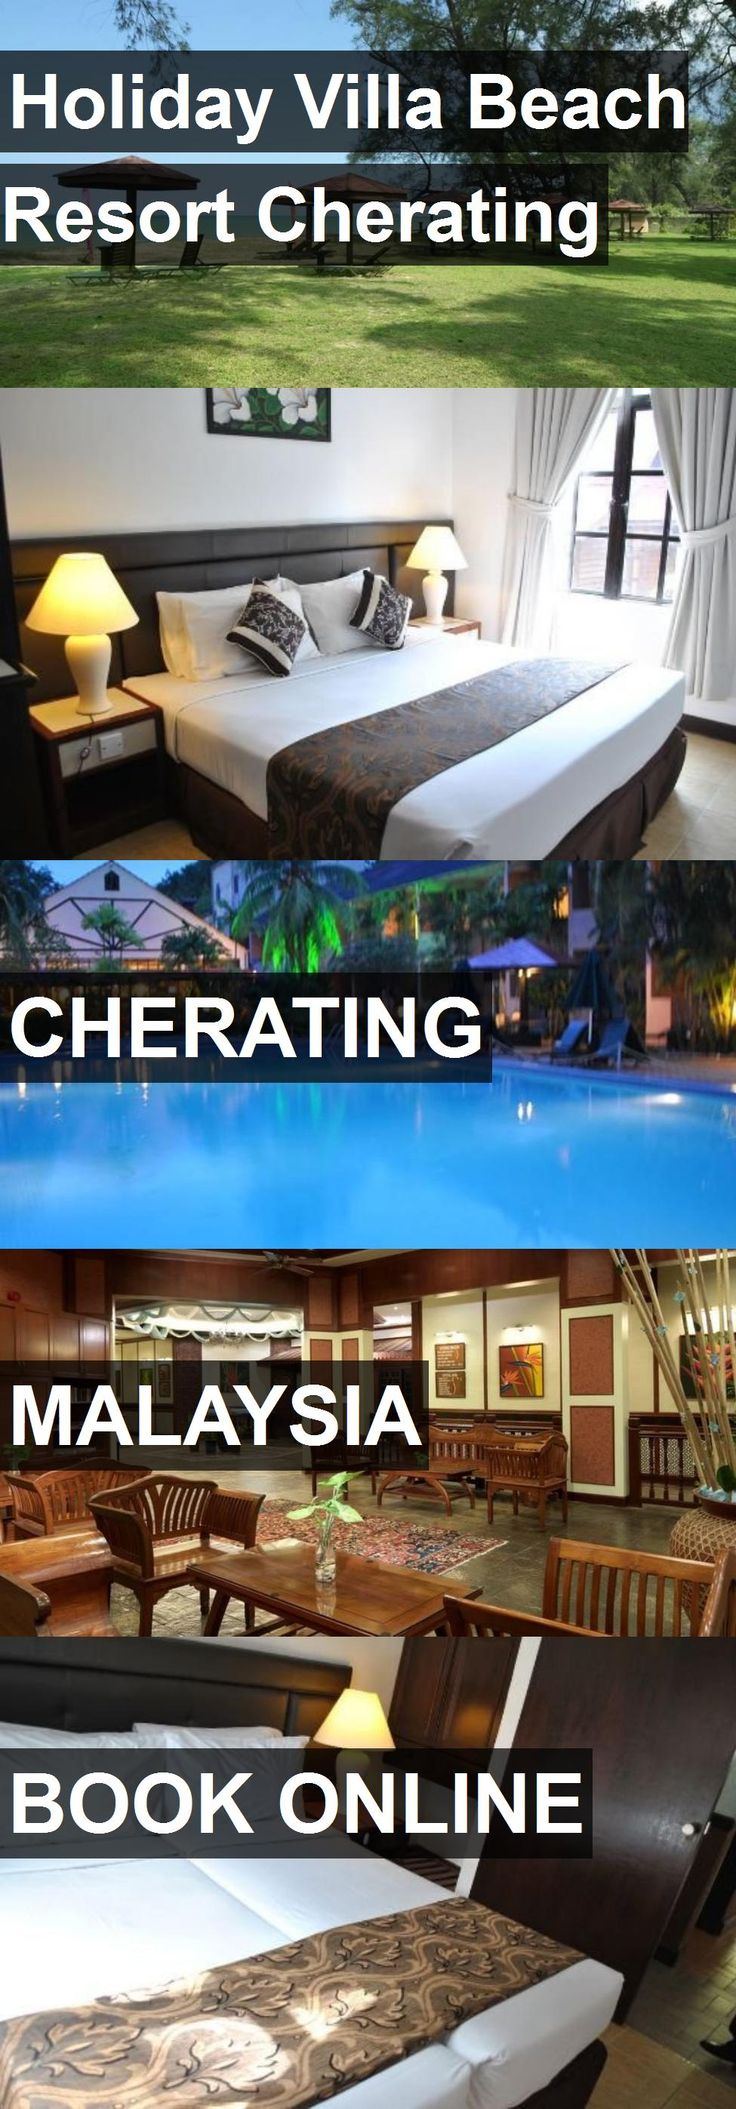 Hotel Holiday Villa Beach Resort Cherating in Cherating, Malaysia. For more information, photos, reviews and best prices please follow the link. #Malaysia #Cherating #travel #vacation #hotel